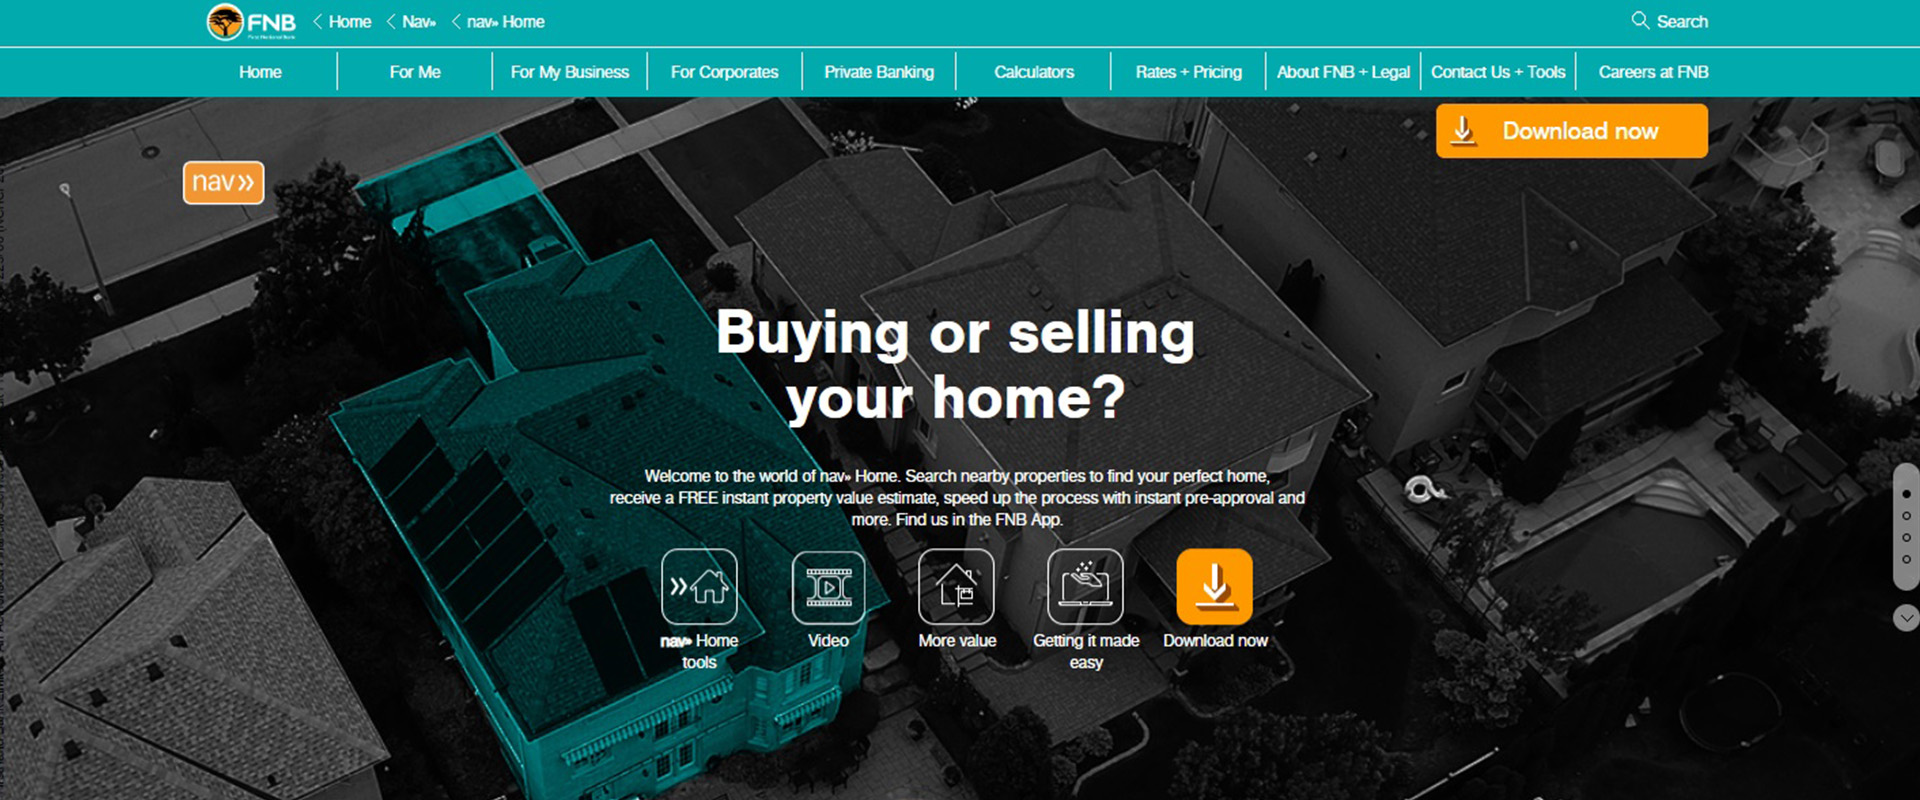 Are agents threatening to boycott bank over new app? - Property